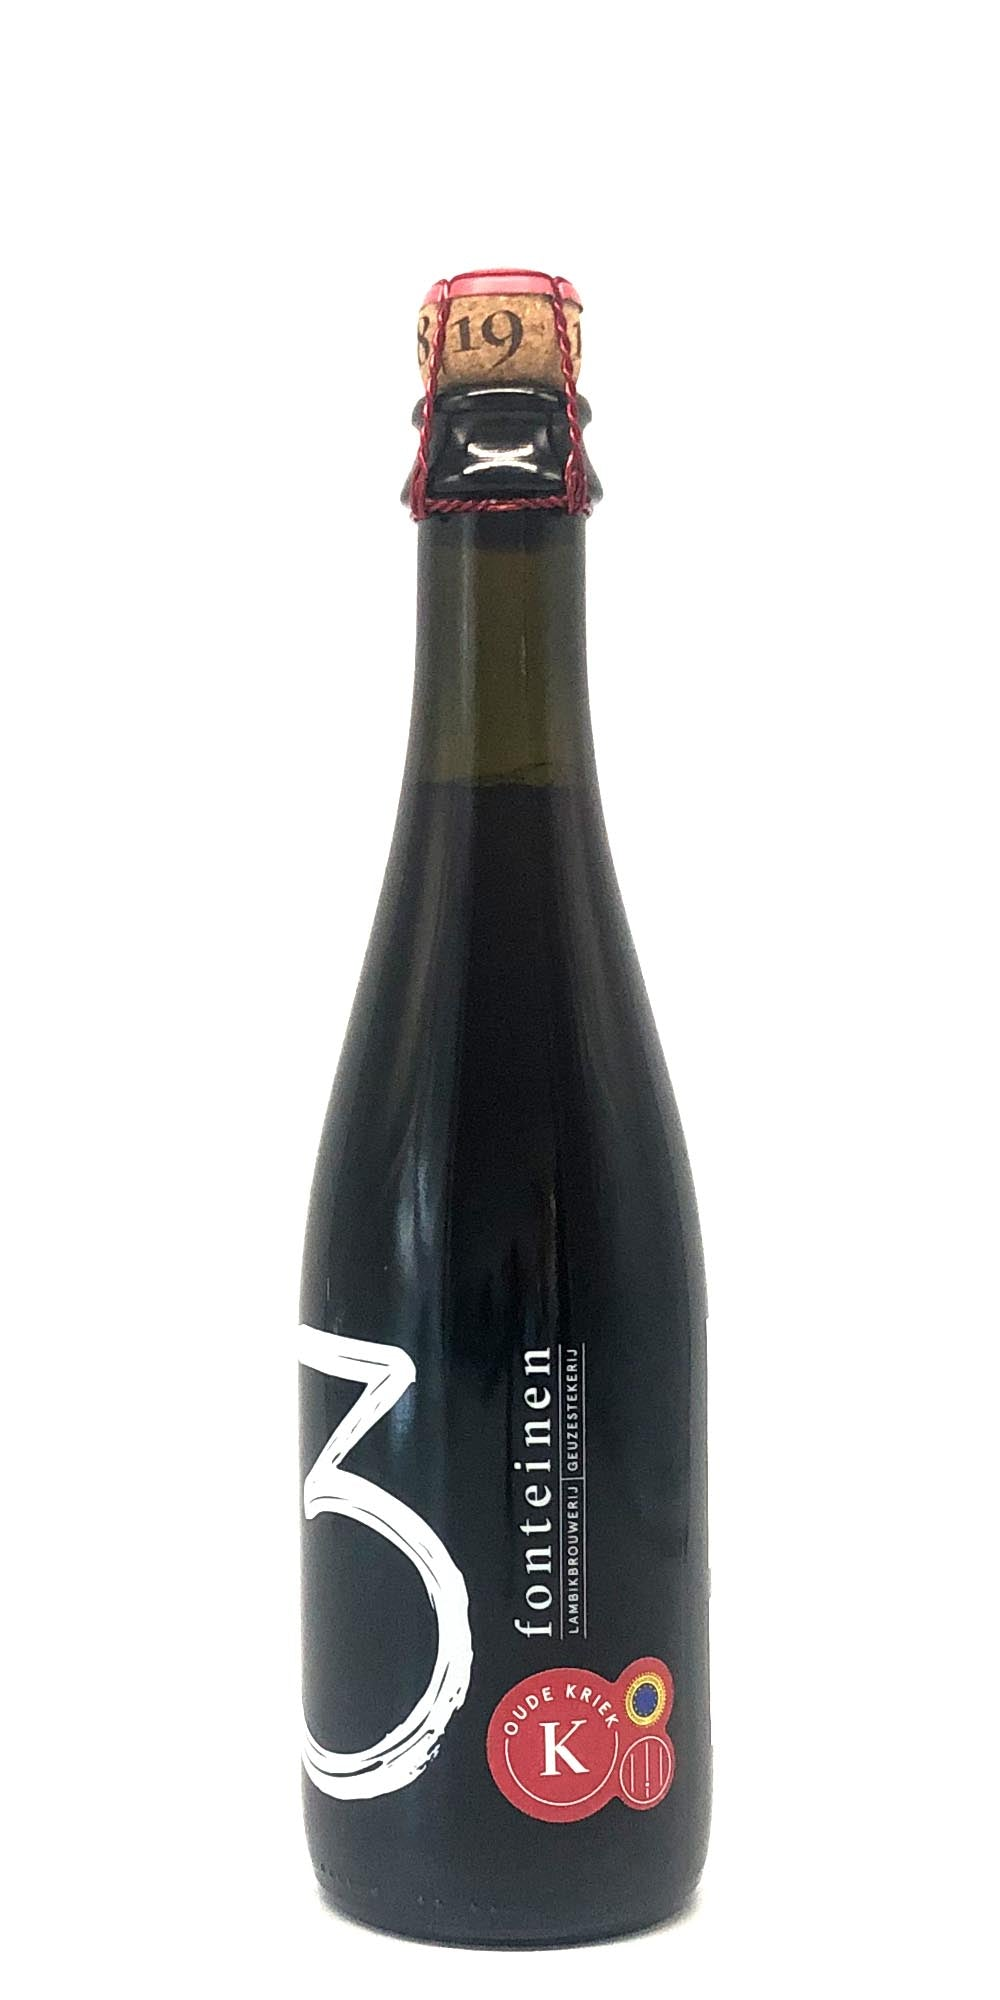 3 Fonteinen - Oude Kriek #66 Barrel Macerated (2019) - 375ml - Drikbeer - Order Craft Beer Online